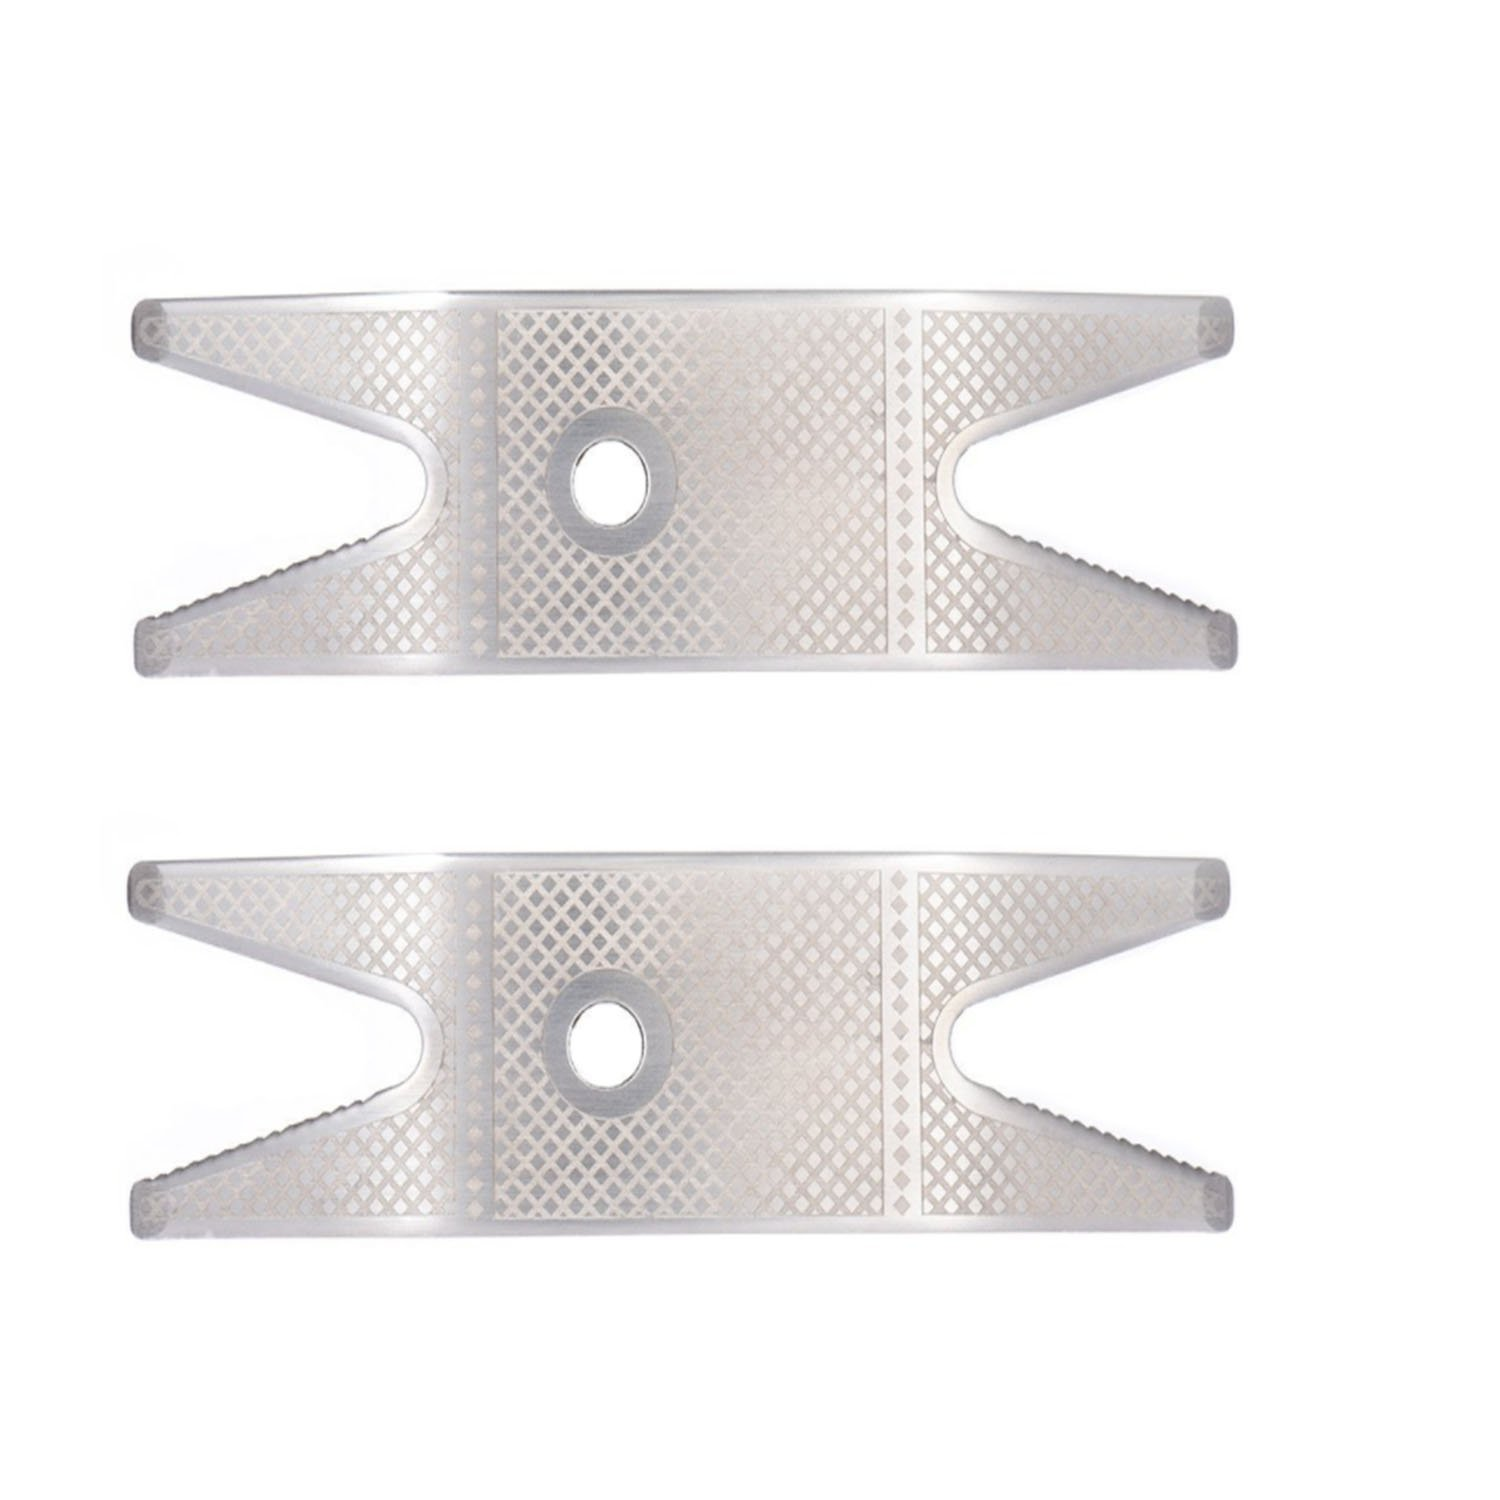 Guitar Spanner Wrench Tool Stainless Steel Multi Spanner Wrench for Guitar Switch Knob Tuner Bushing Pack of 2